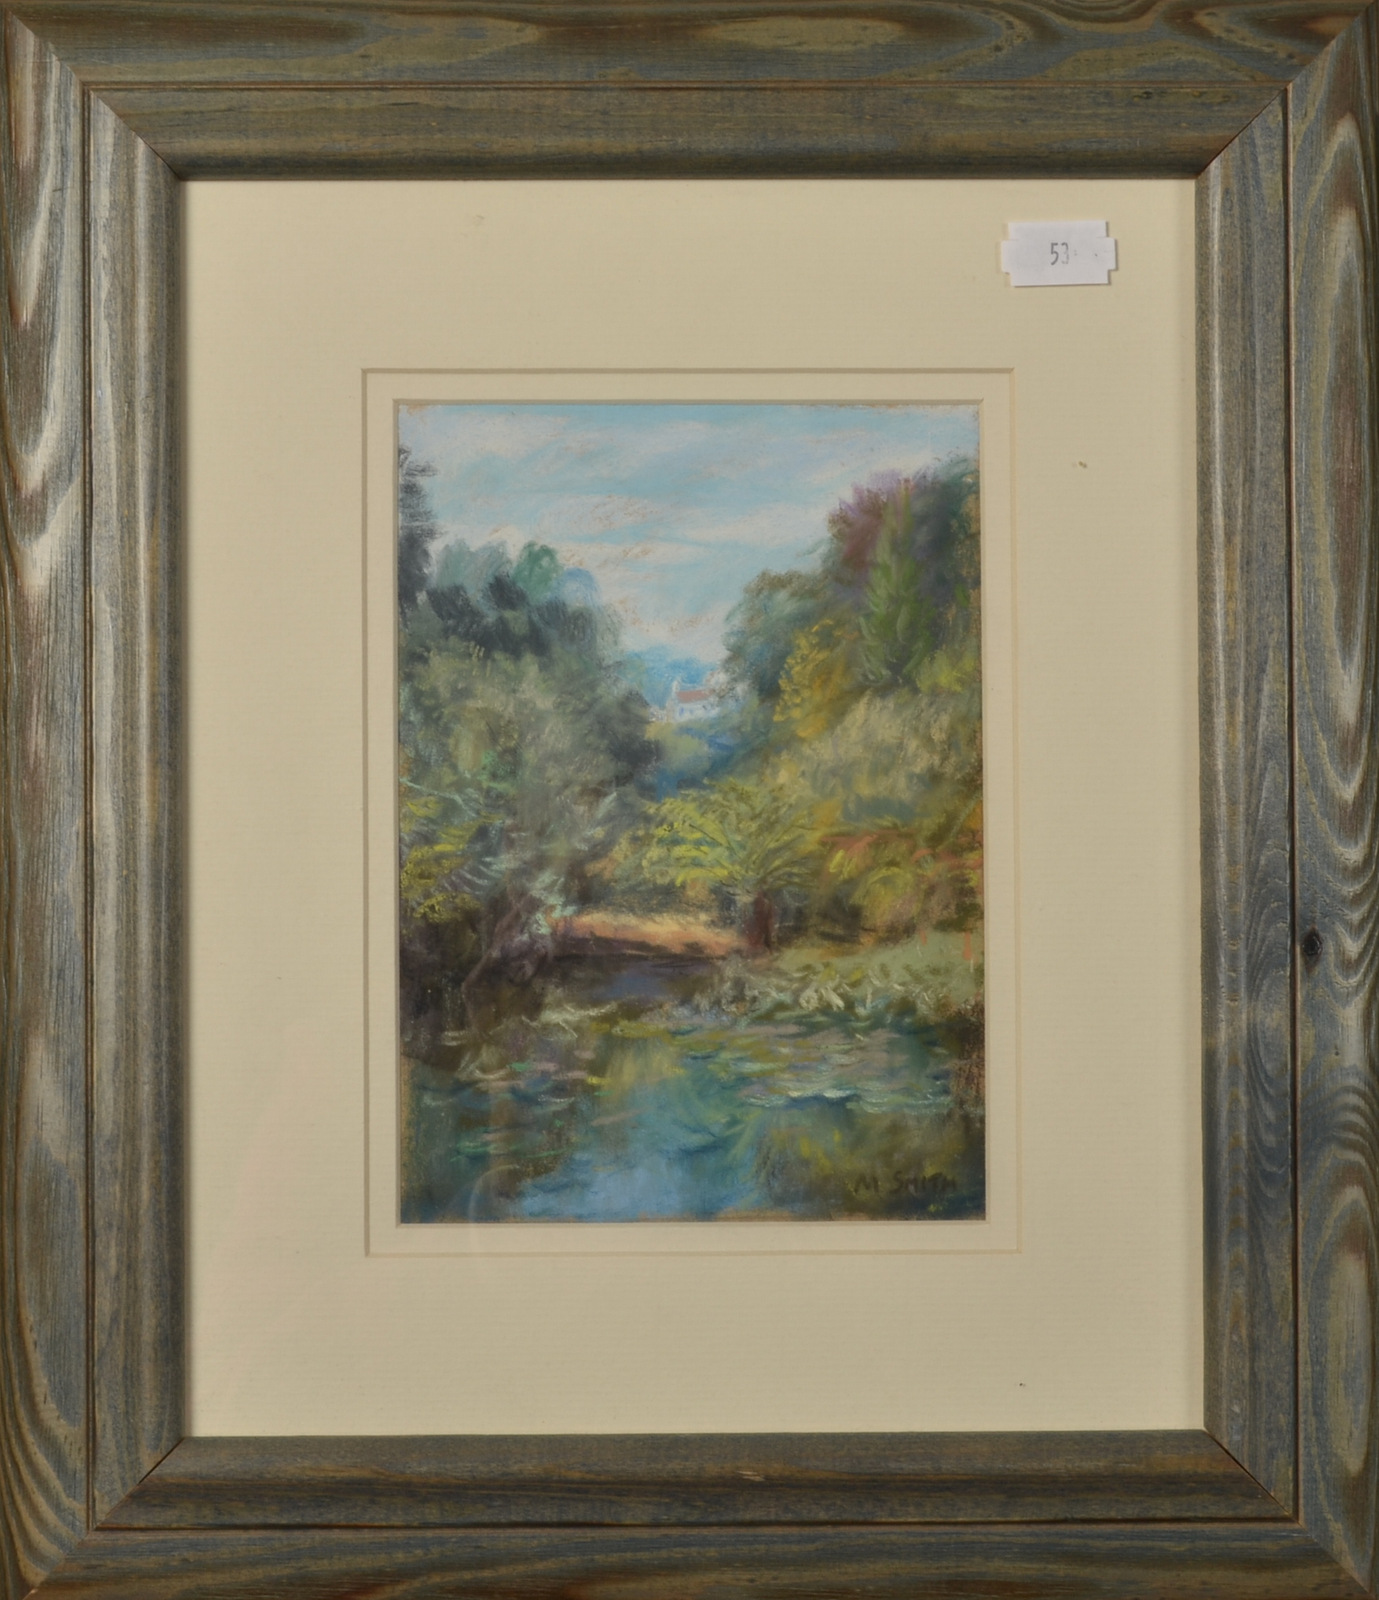 Lot 53 - MICHAEL SMITH Eagles Nest,